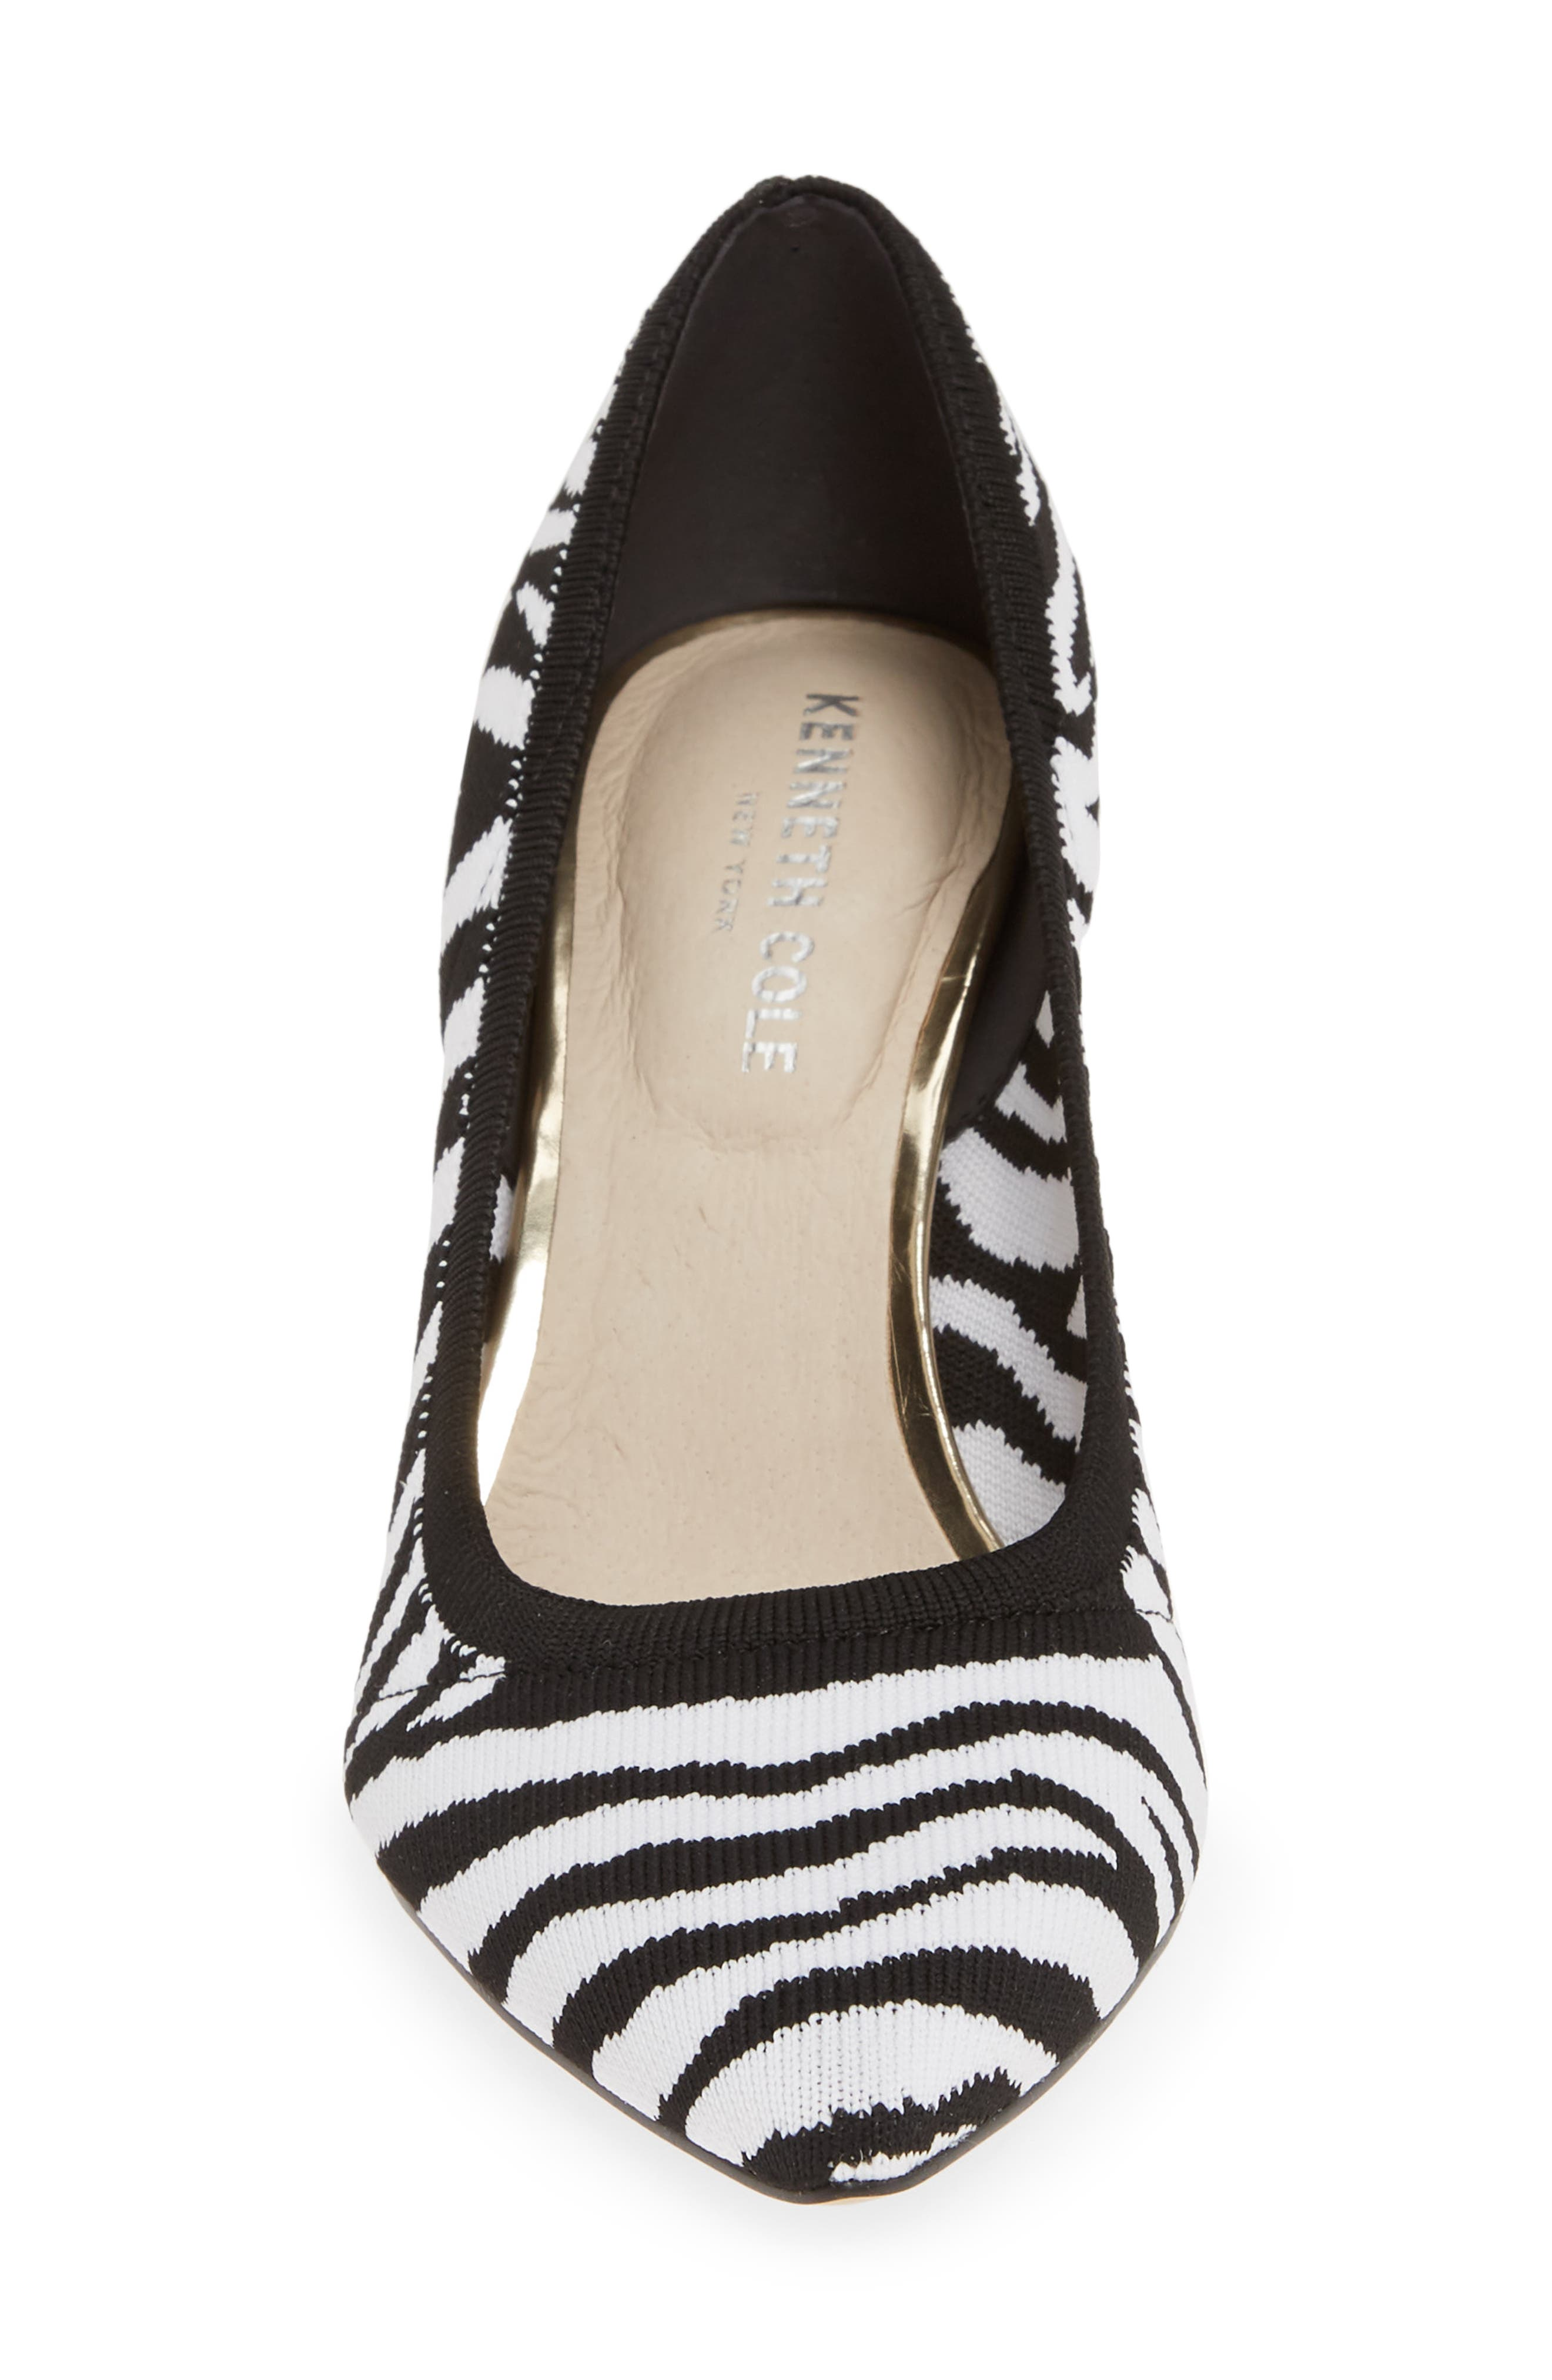 KENNETH COLE NEW YORK,                             Riley 85 Pump,                             Alternate thumbnail 4, color,                             BLACK/ WHITE KNIT